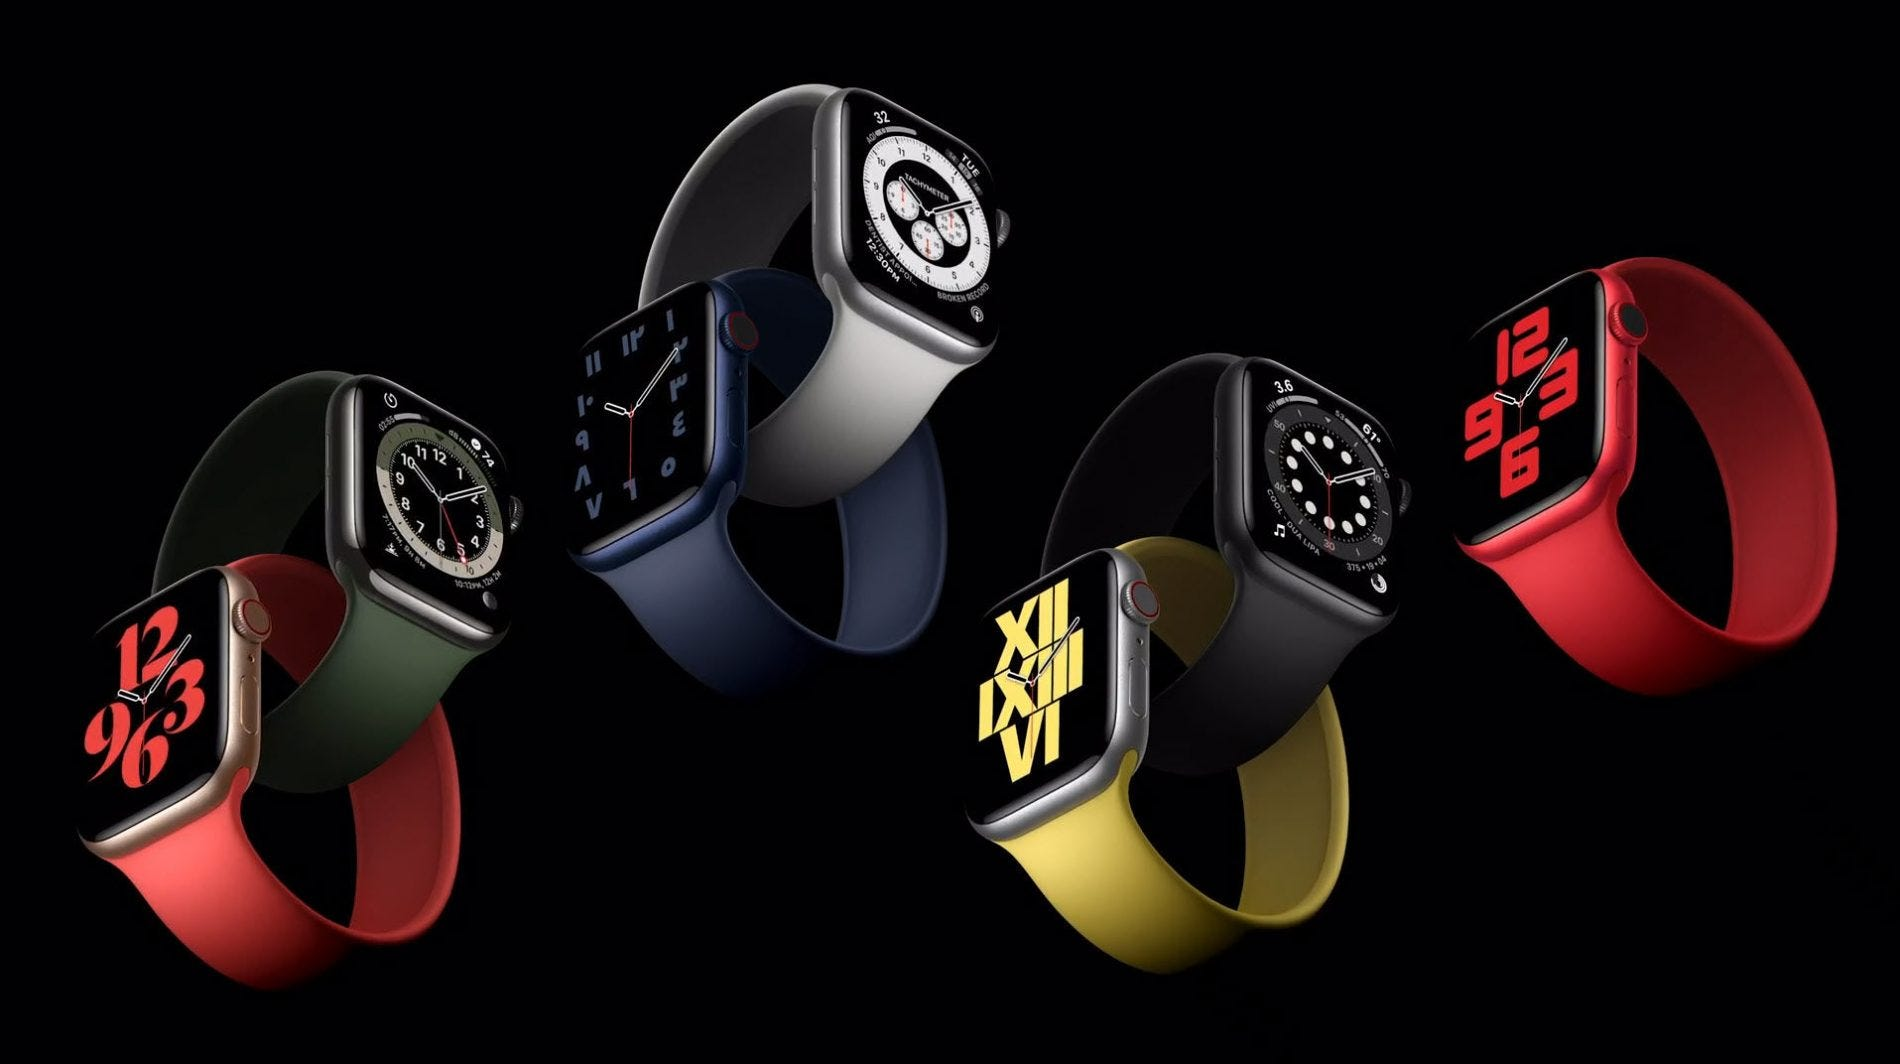 Different colors of Apple Watches on a black background.